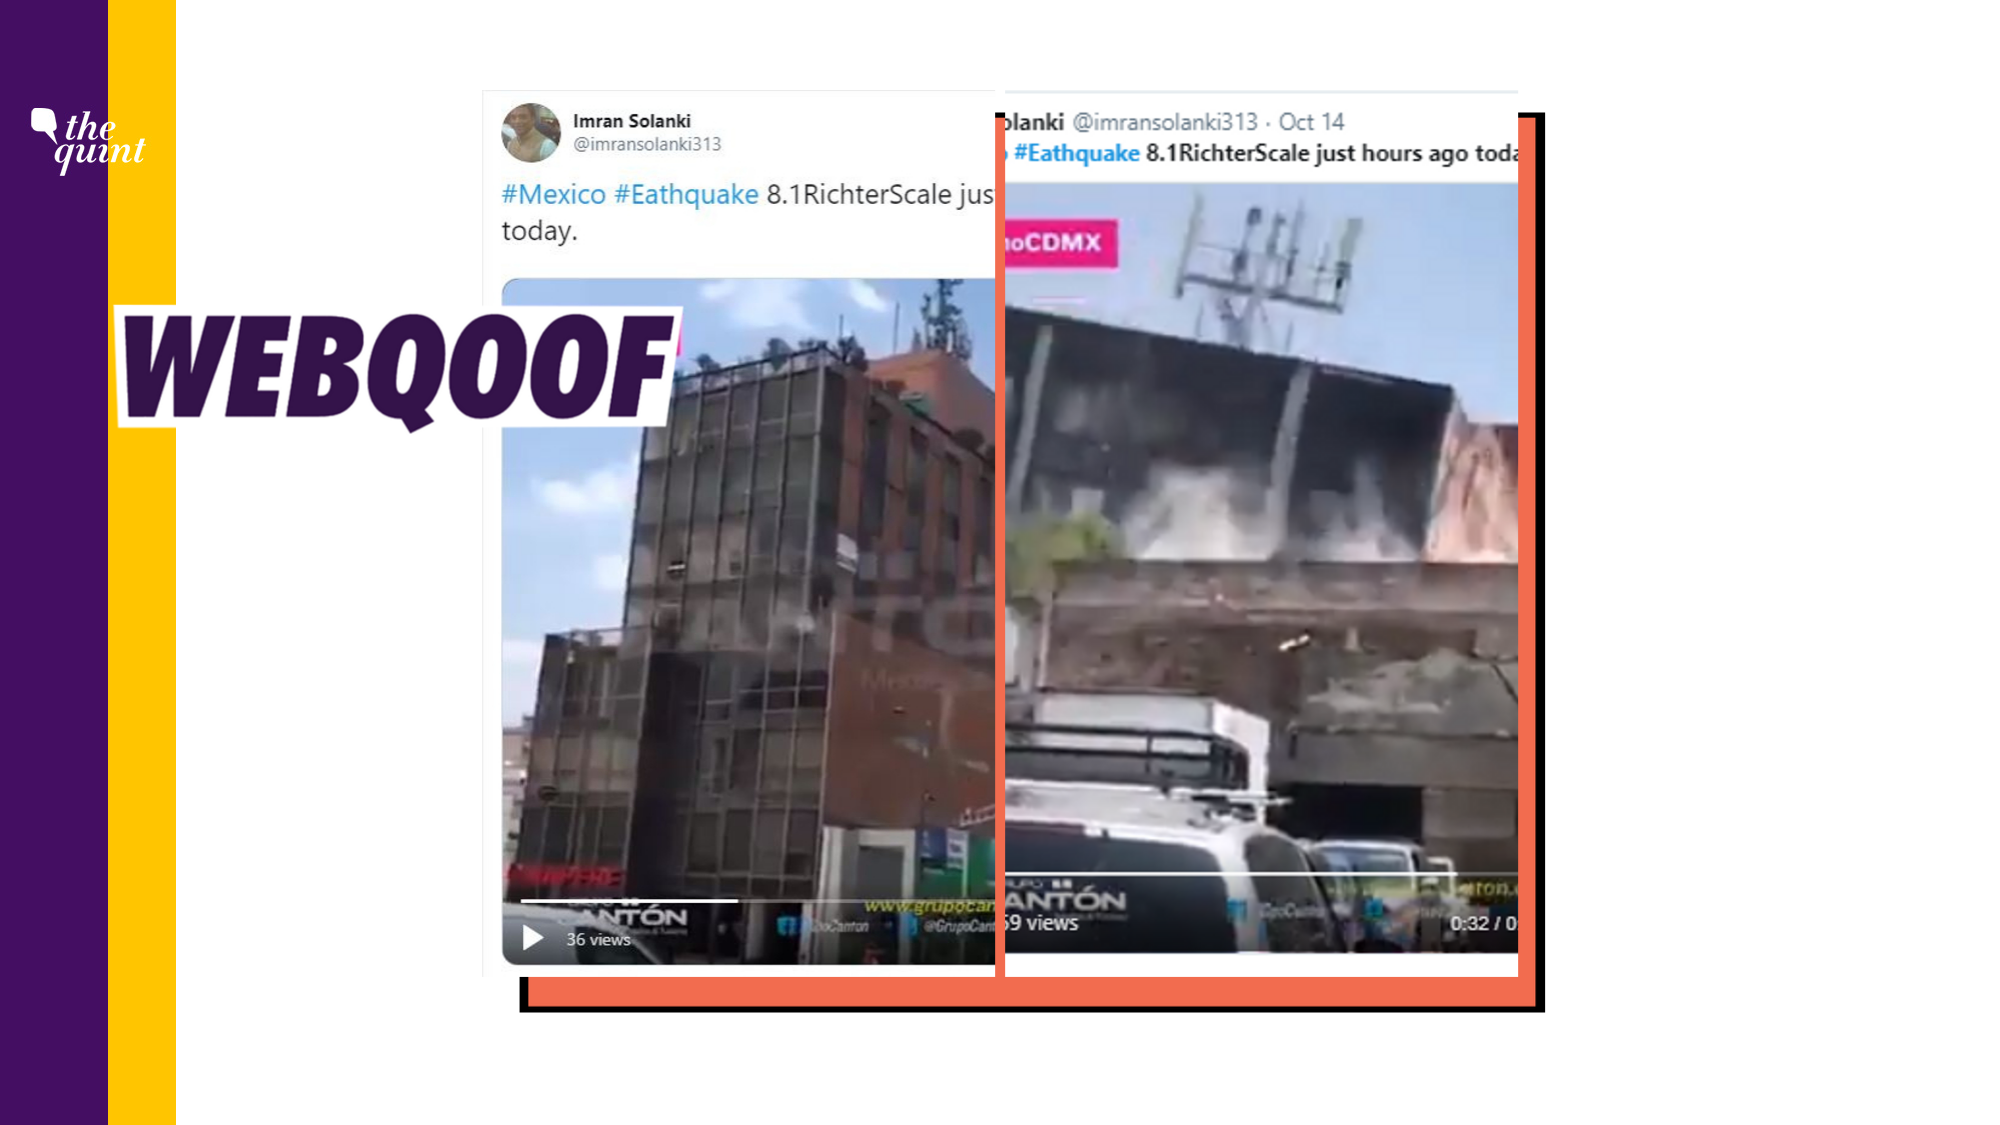 Old Video of Deadly 2017 Earthquake in Mexico Shared As Recent